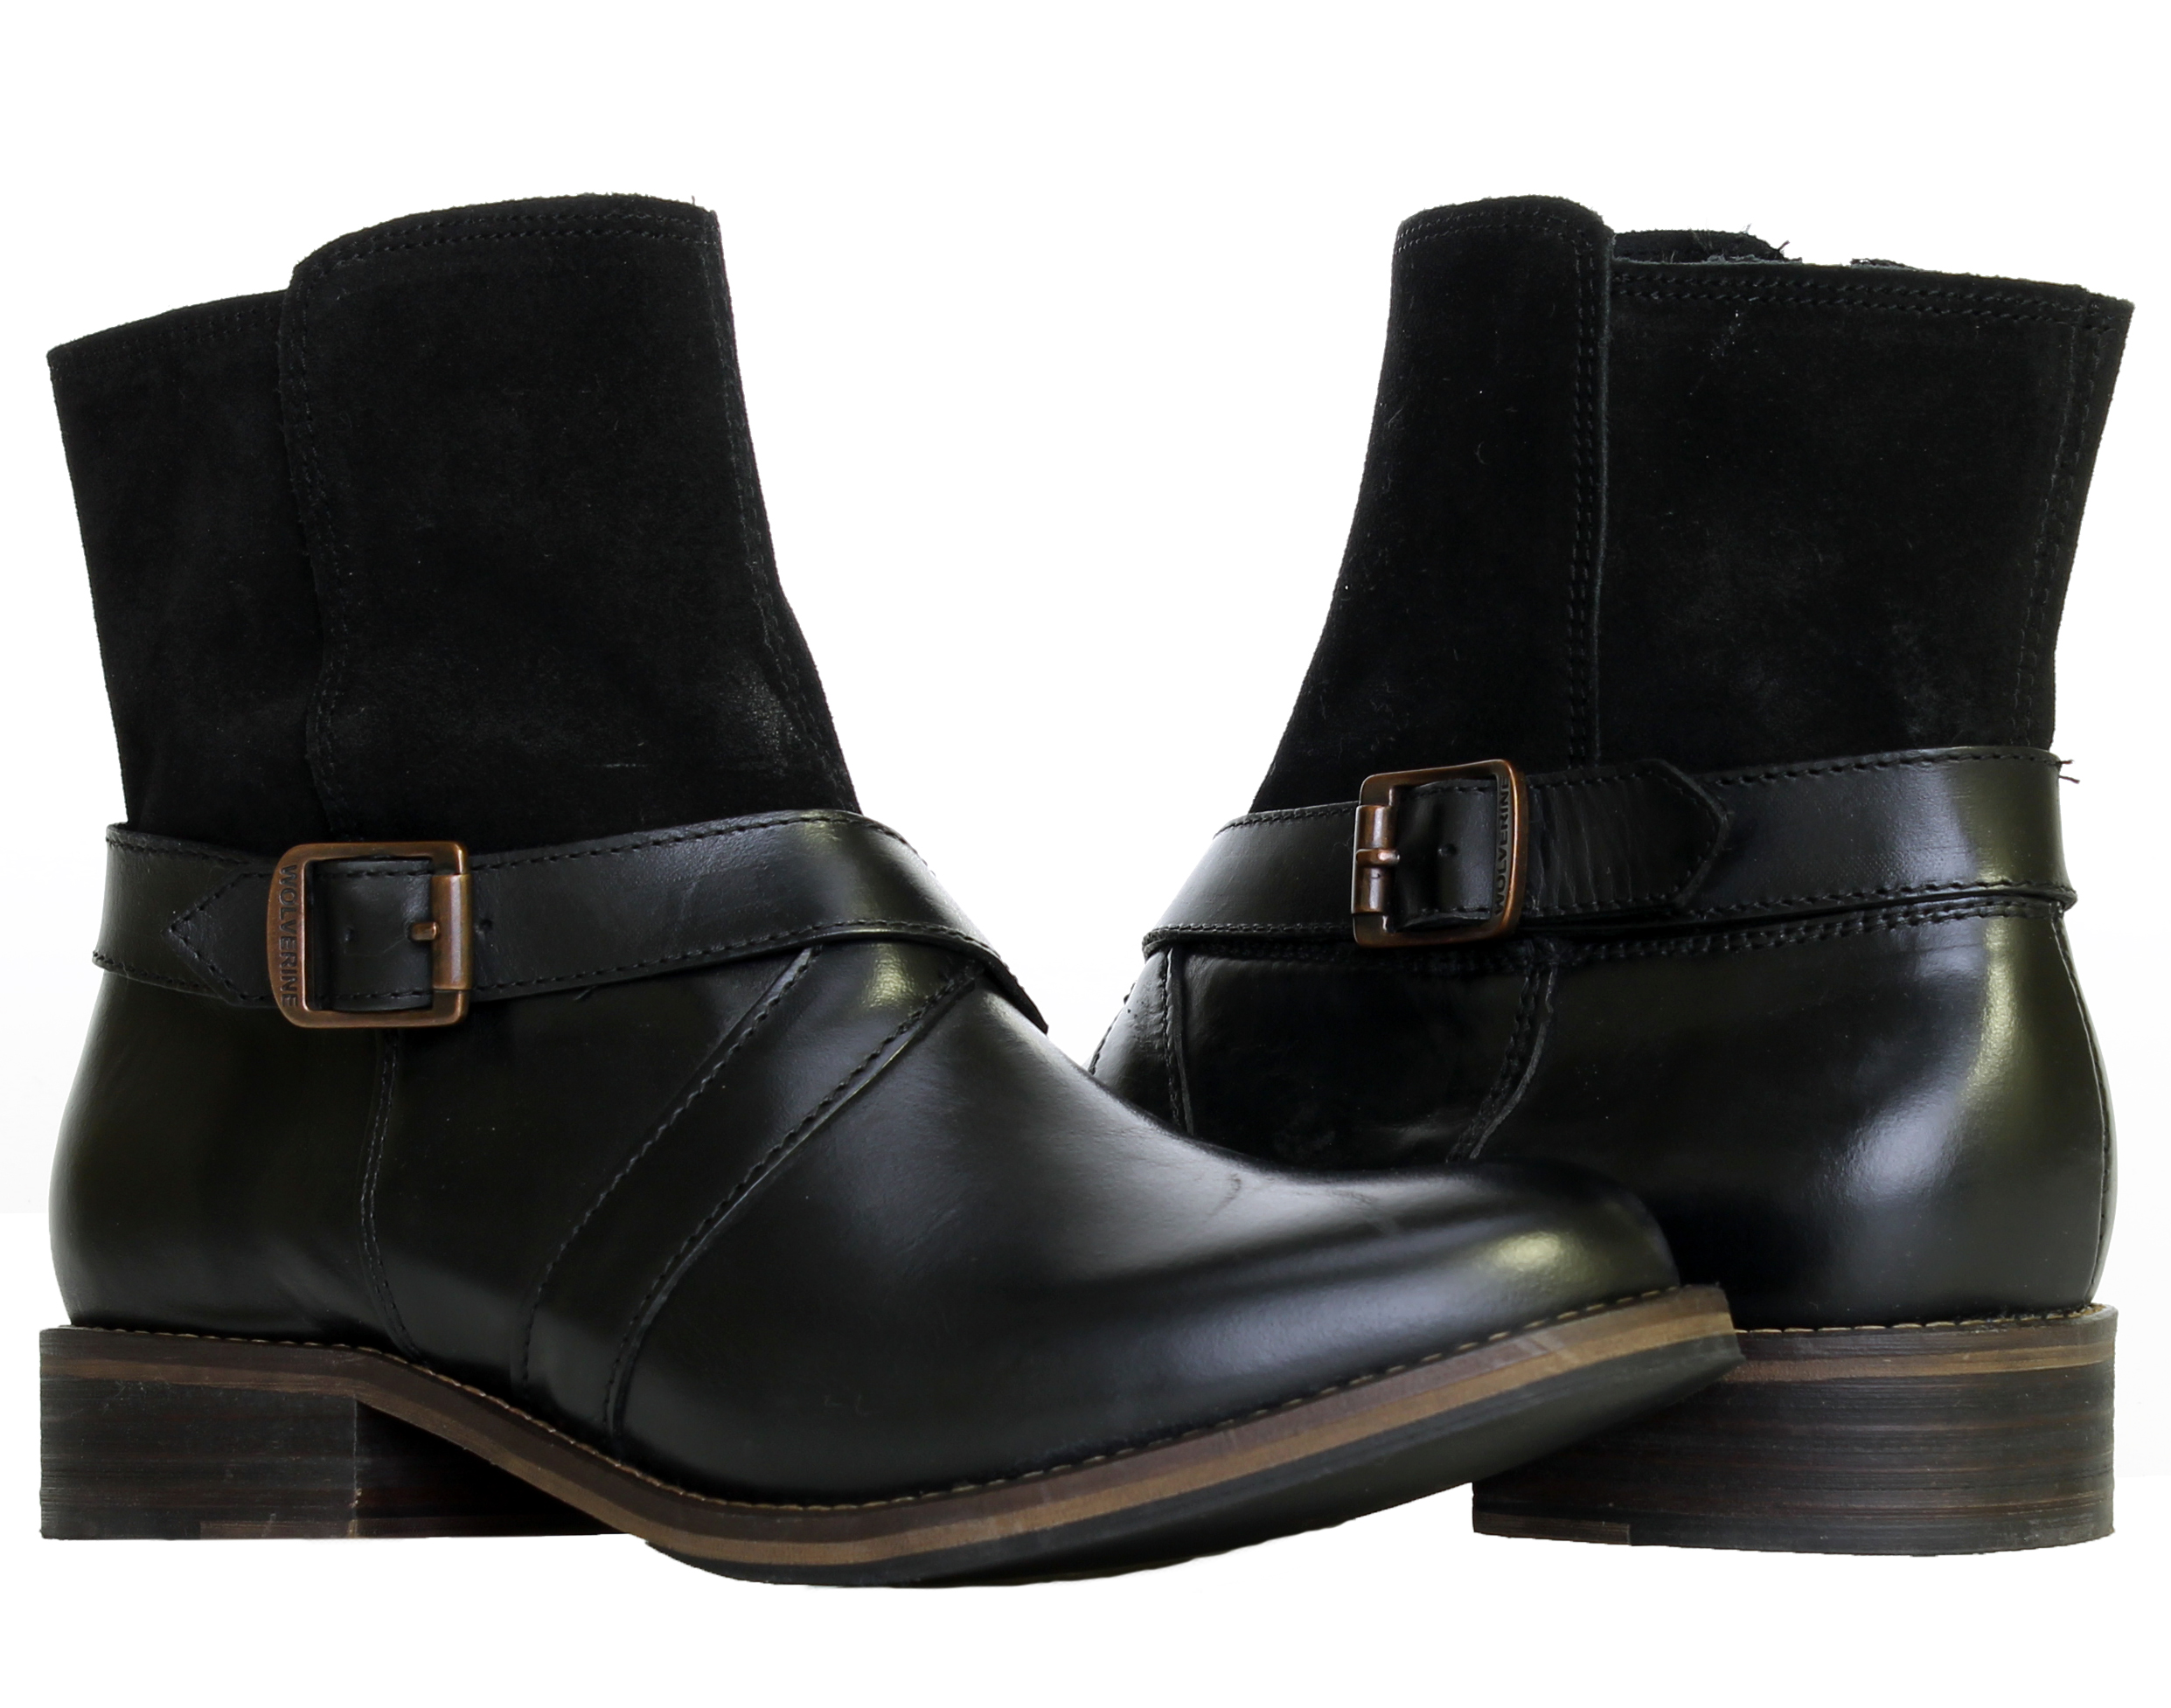 1883 by Wolverine Pearl Black Leather Women's Ankle Boots W40089 by Wolverine